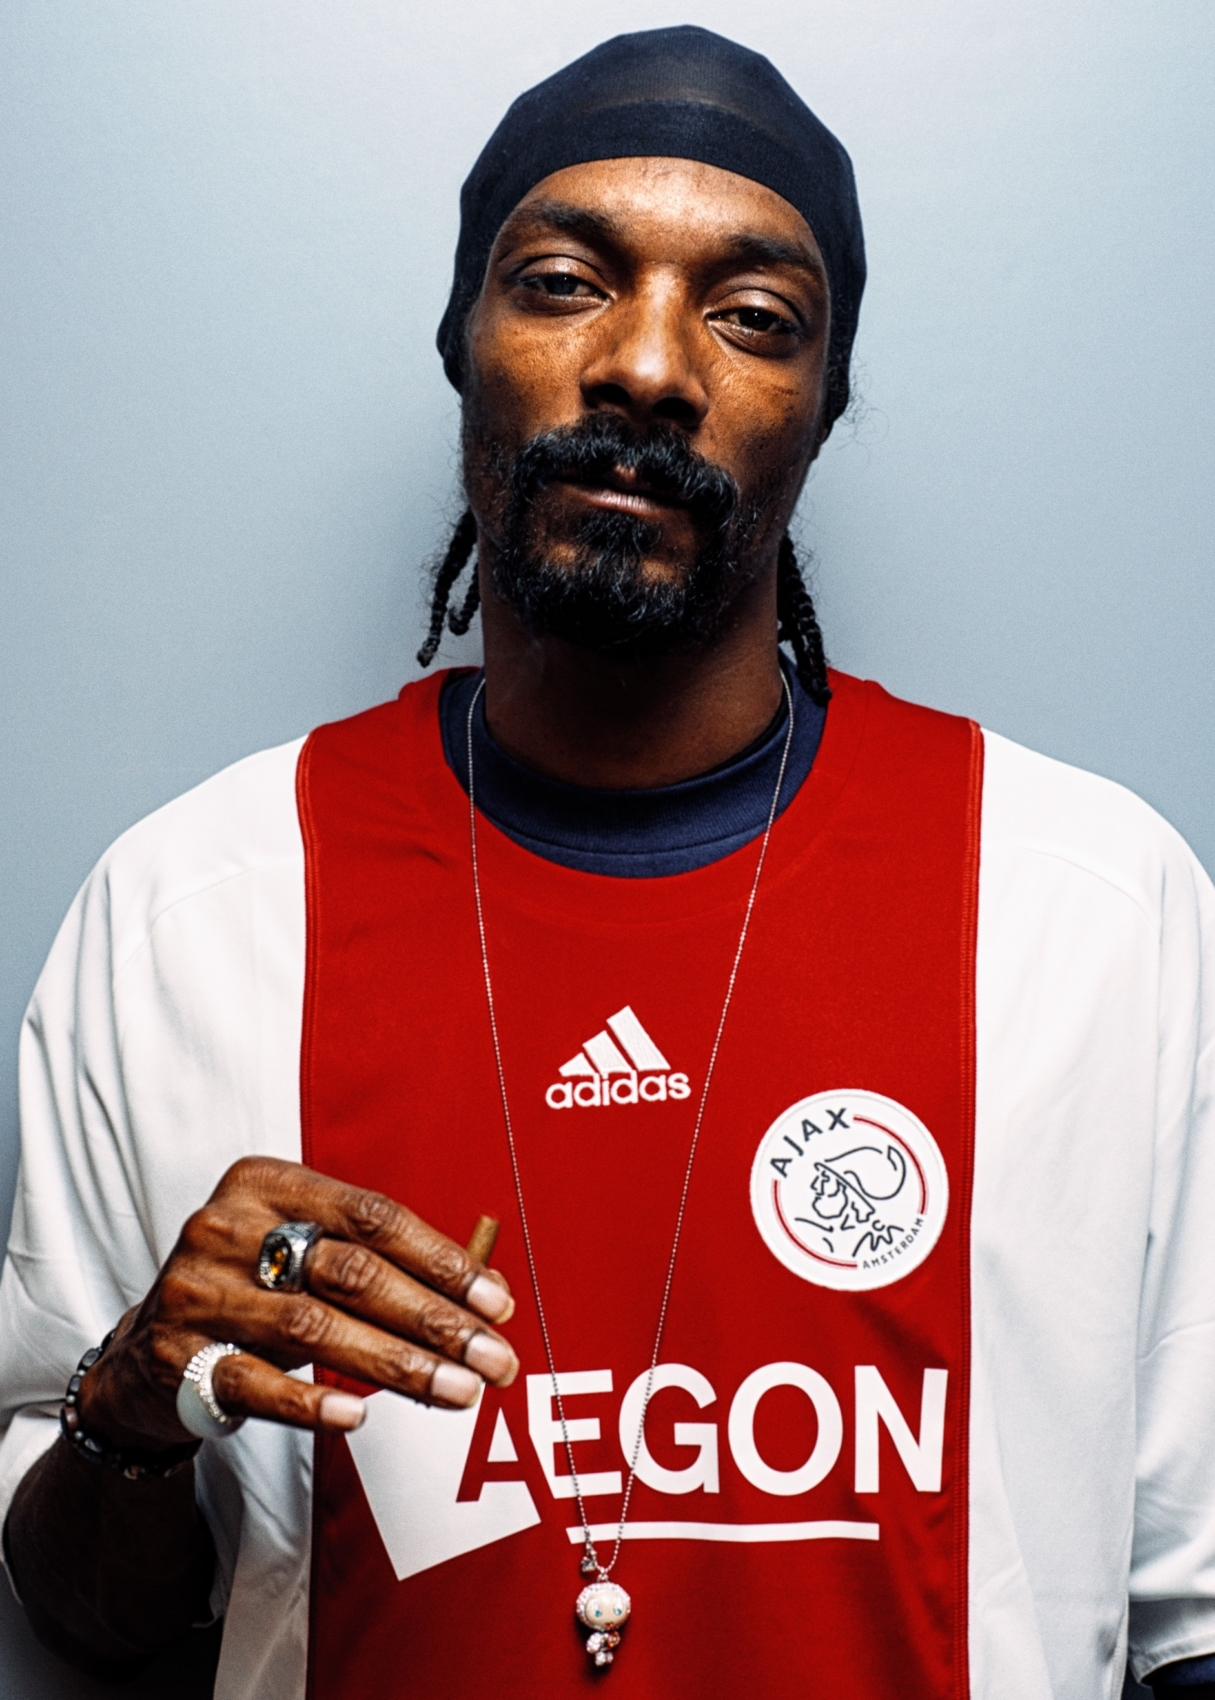 Snoop-Dogg-Ilja-Meefout-2